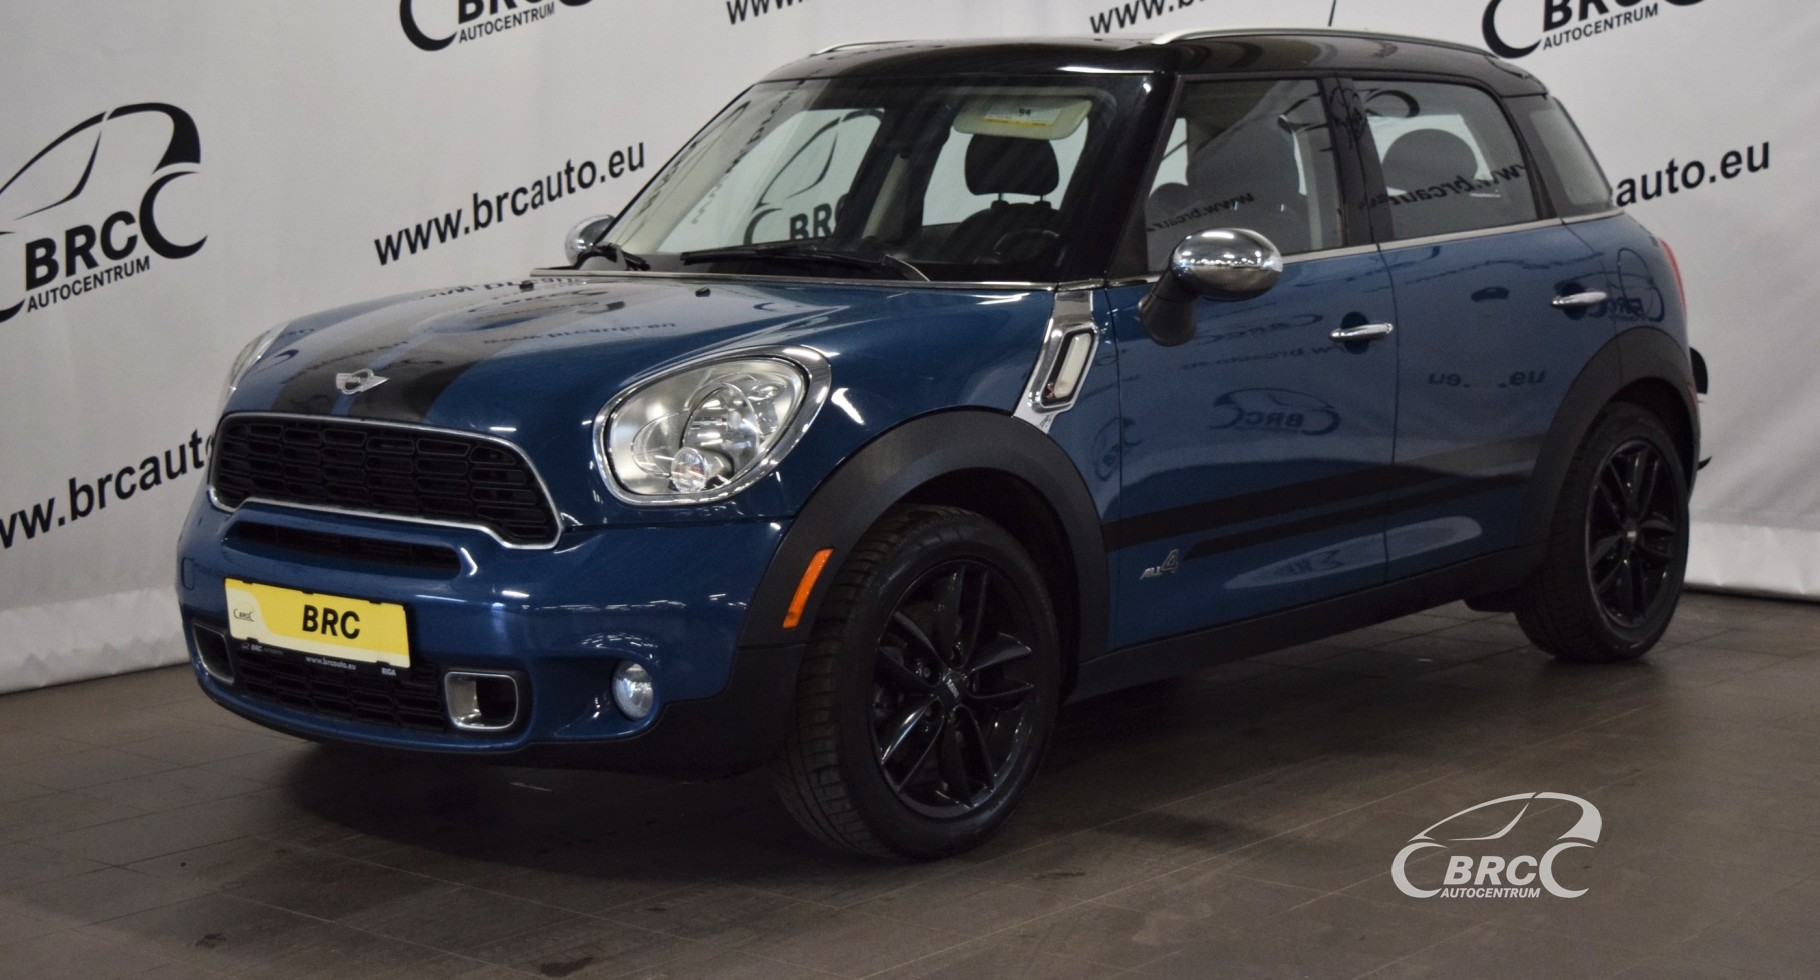 Mini Countryman S All4 Id 811914 Brc Autocentrum